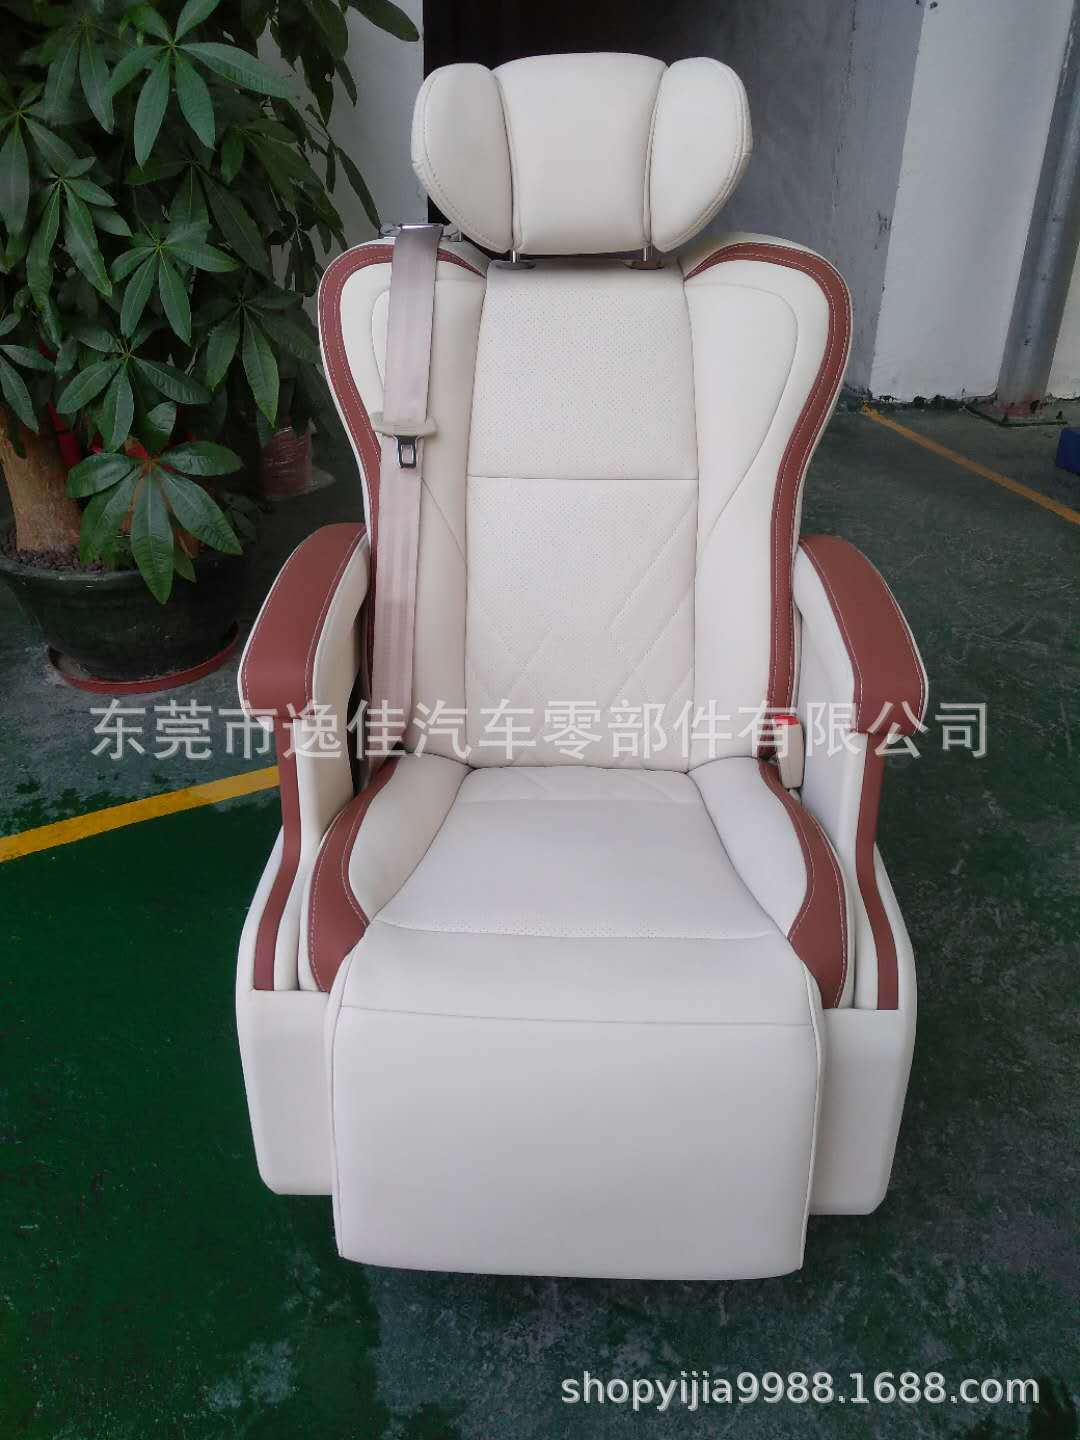 Custom car seat Commercial vehicle aviation seat Engineering equipment seat Smart seat Passenger car seat